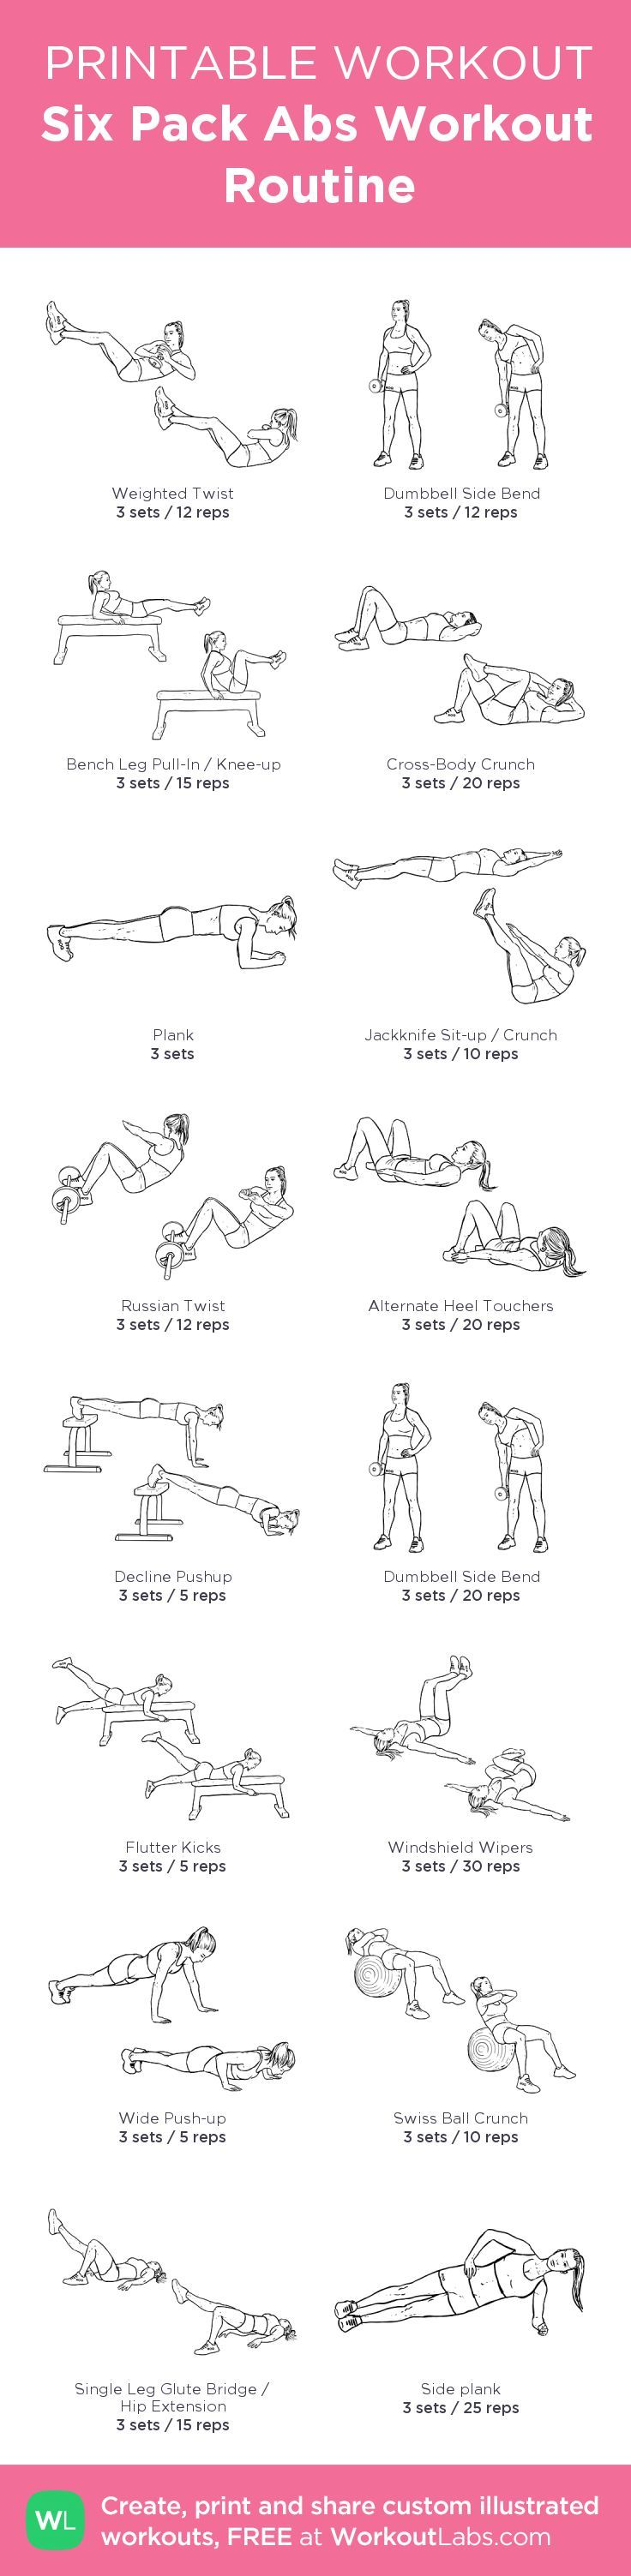 cool Six Pack Abs Workout Routine